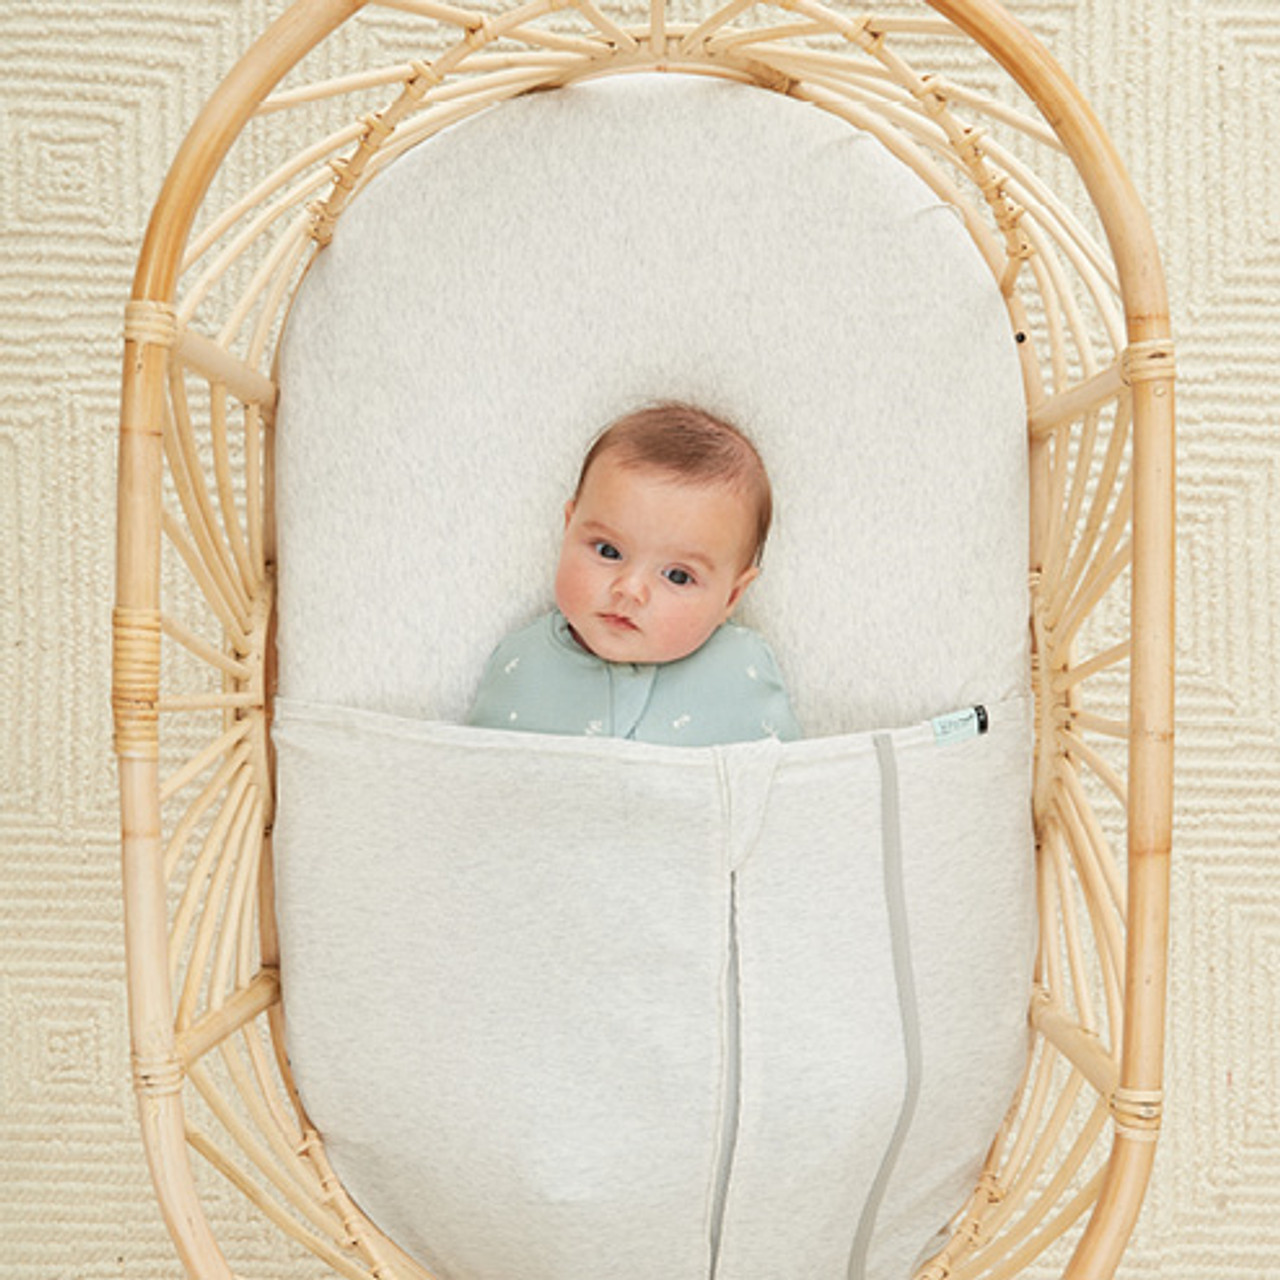 Ergopouch Bassinet Tuck Sheet at Baby Barn Discounts Ergopouch baby Tuck Sheet is a TOG-rated, safe alternative to blankets suitable from birth.